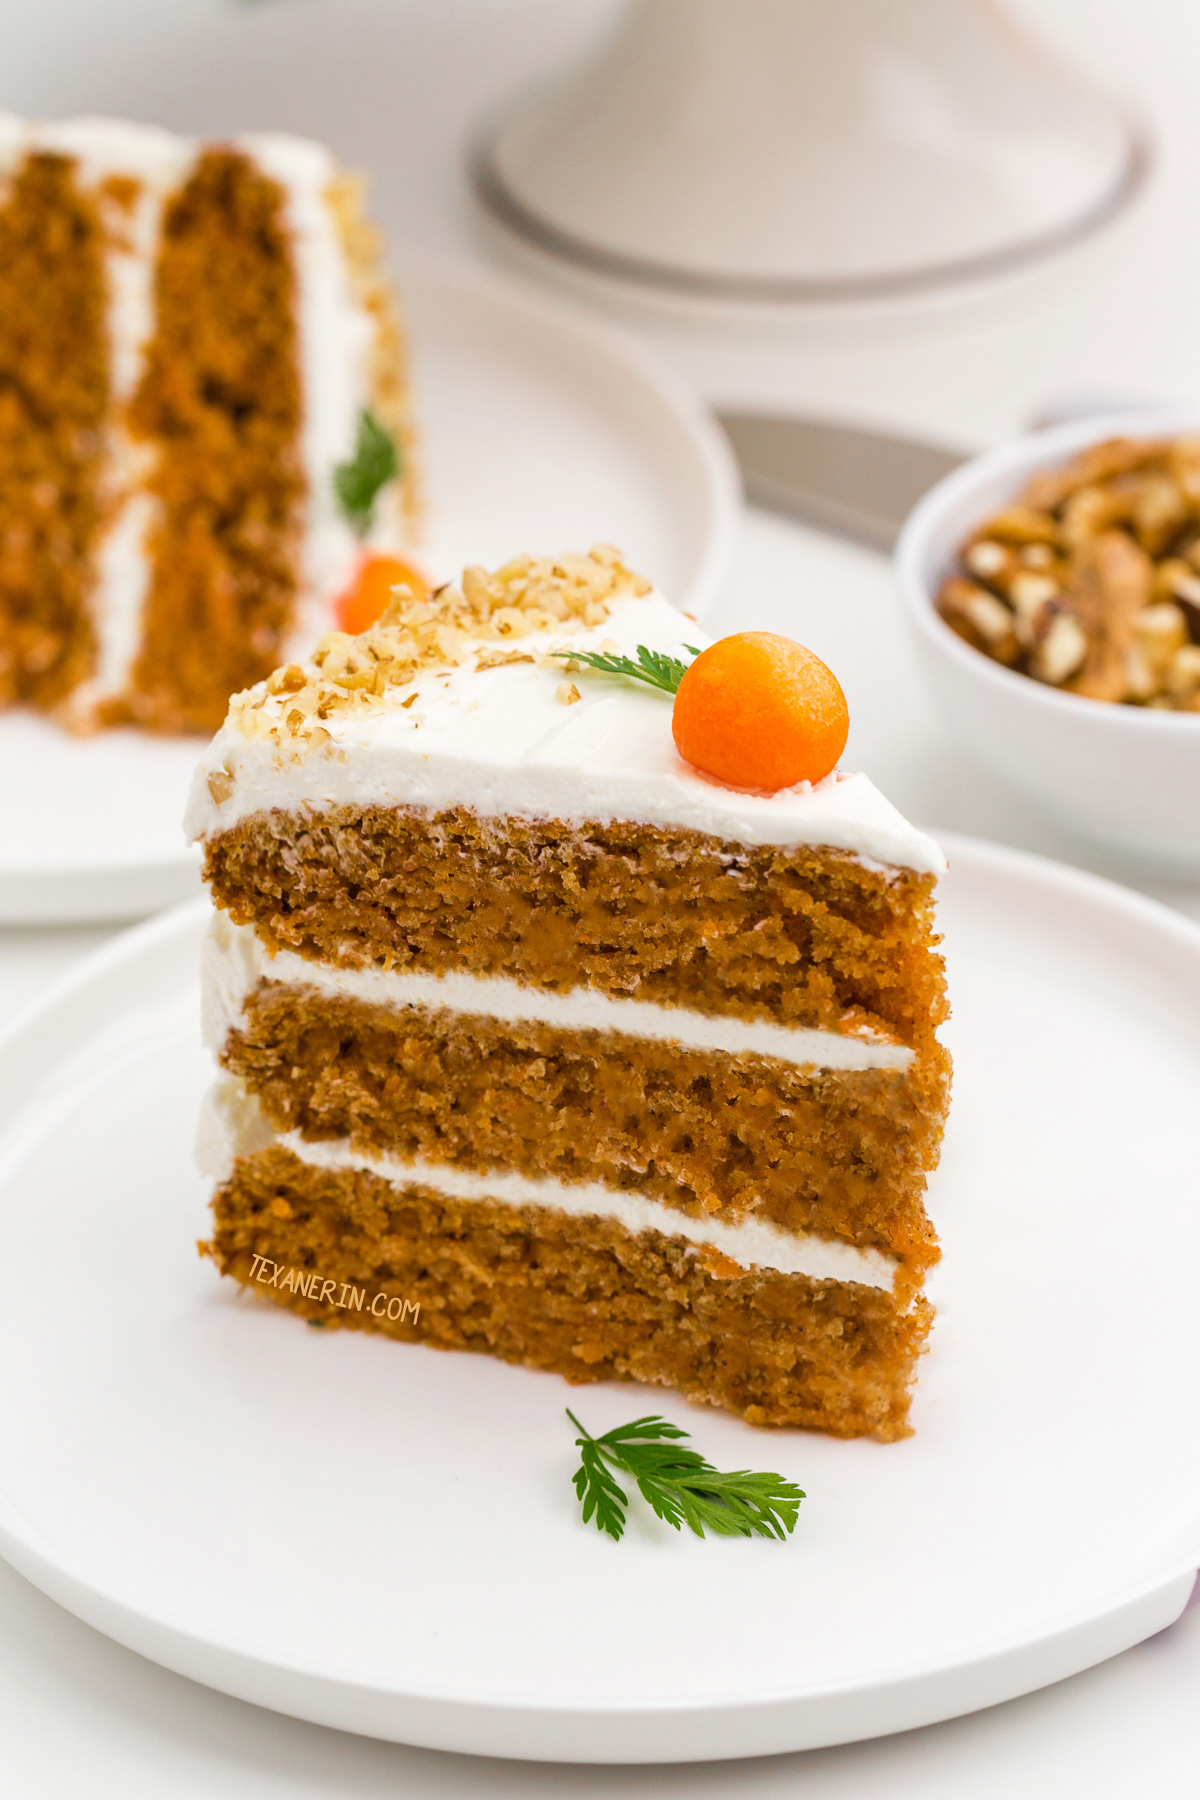 Best Carrot Cake Recipes Without Nuts